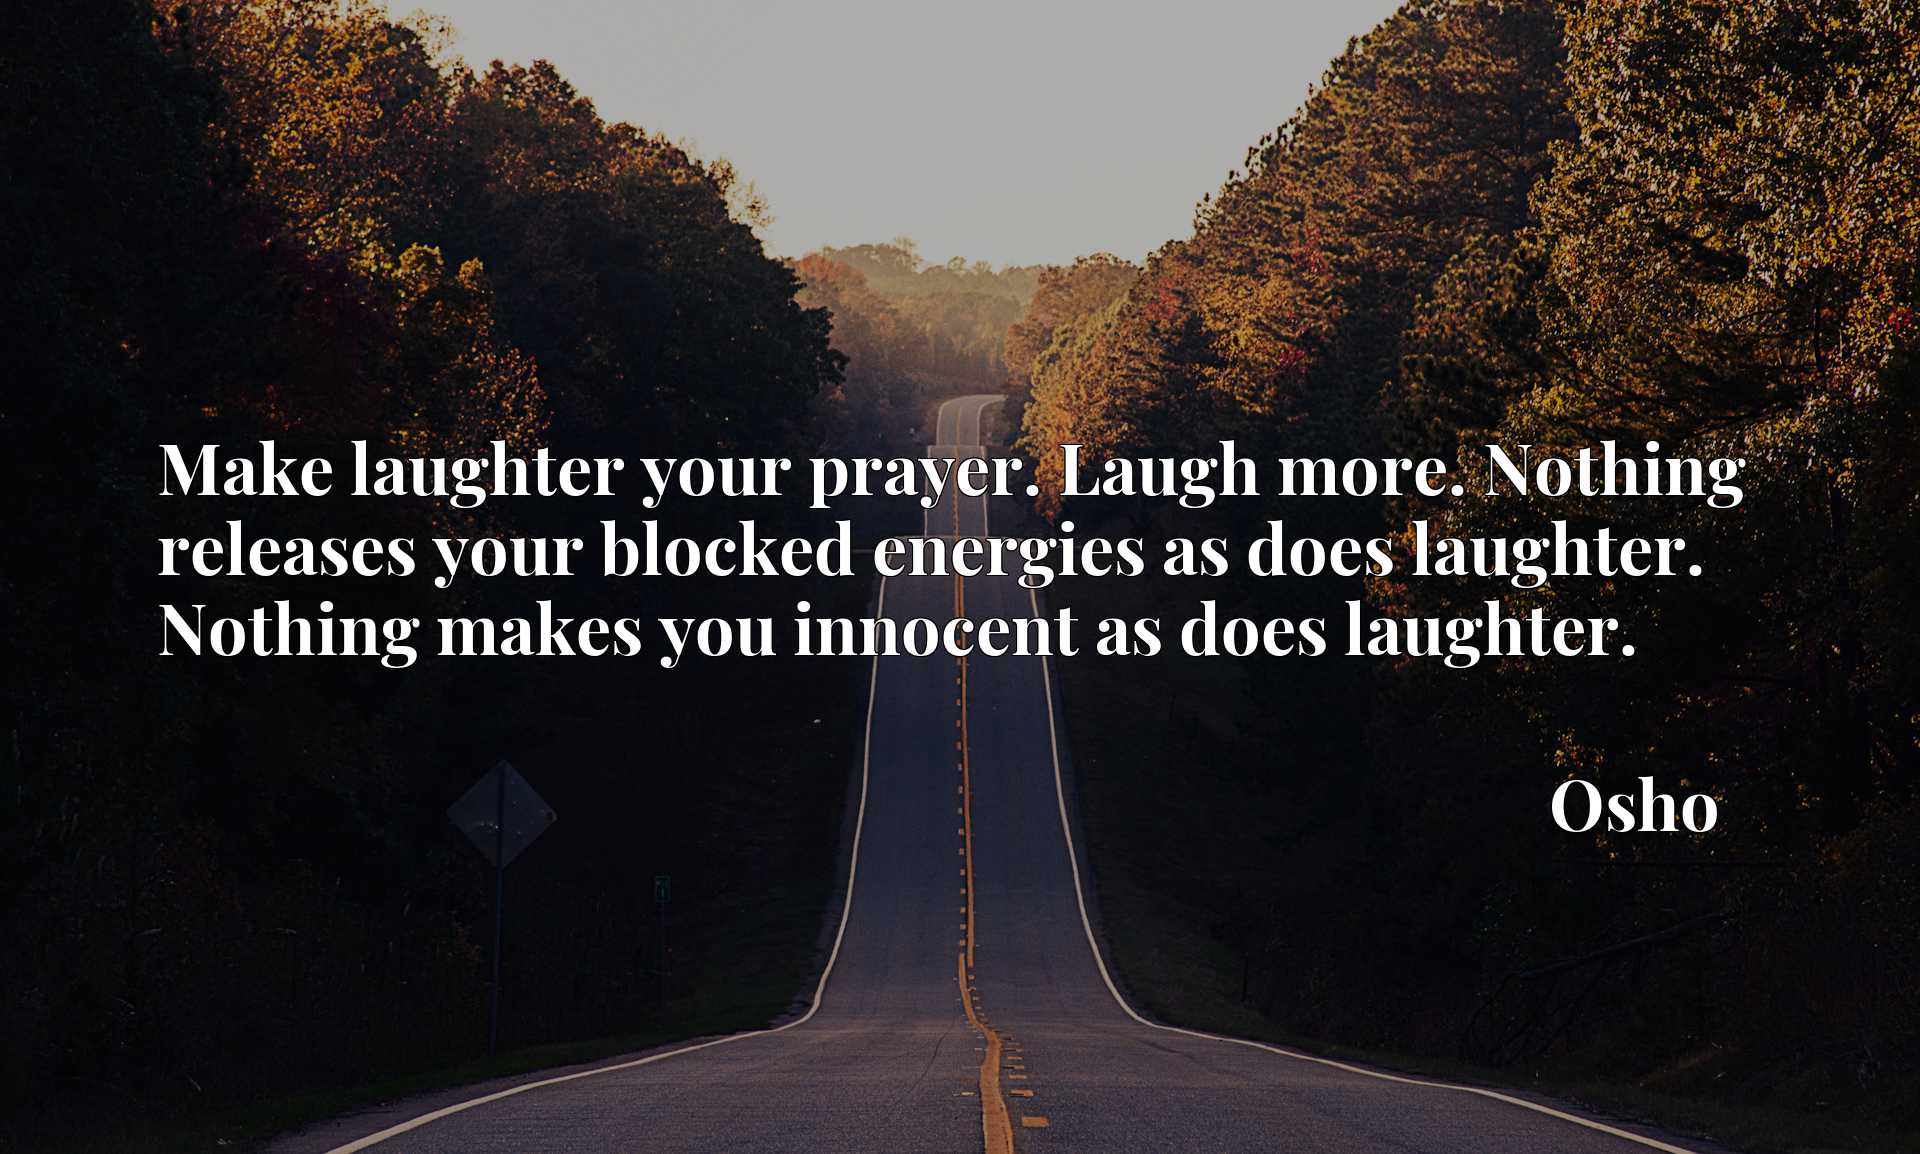 Make laughter your prayer. Laugh more. Nothing releases your blocked energies as does laughter. Nothing makes you innocent as does laughter.